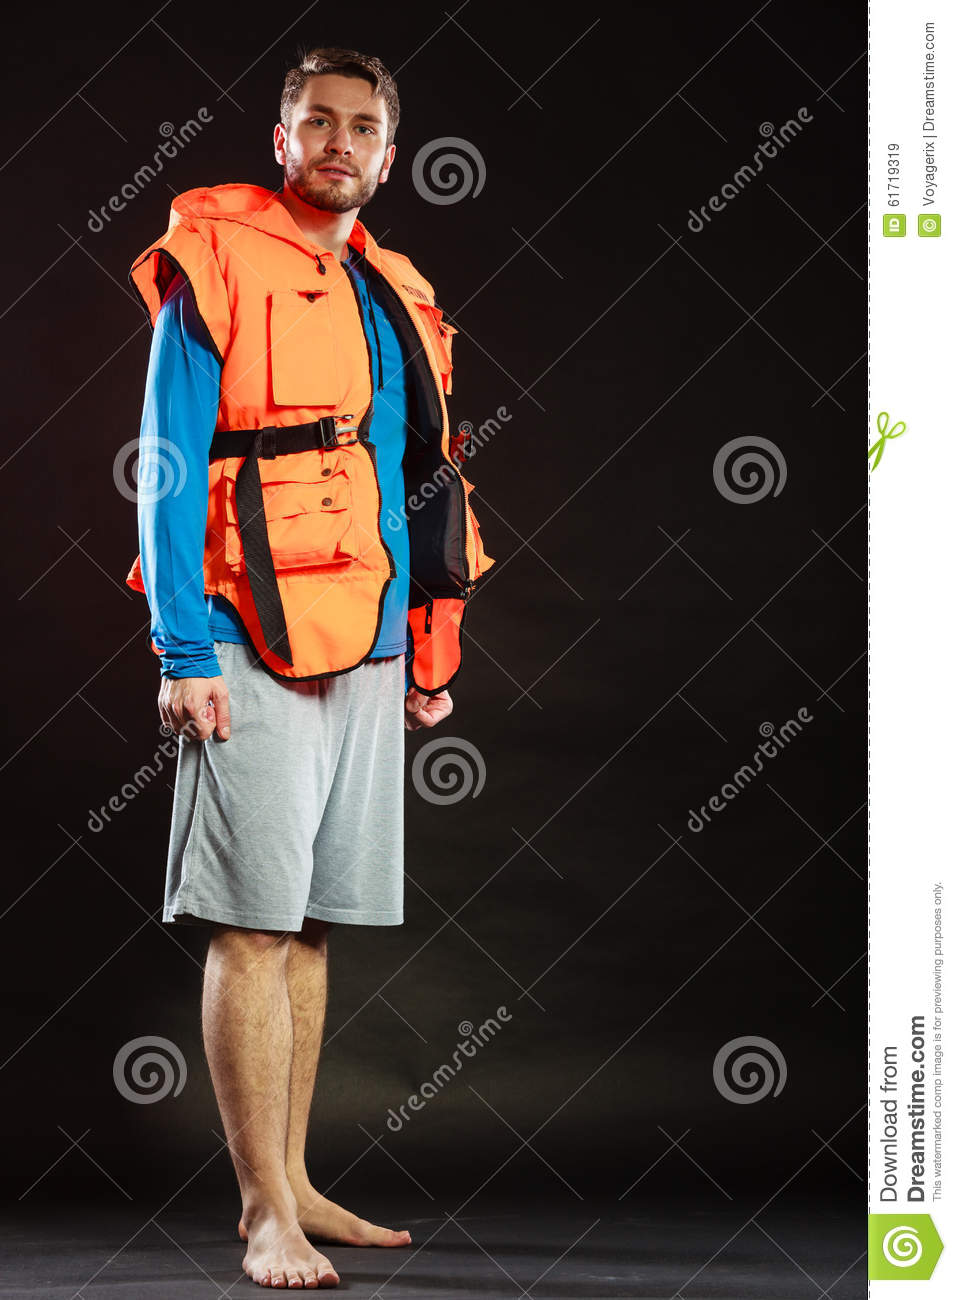 how to use life jacket in water